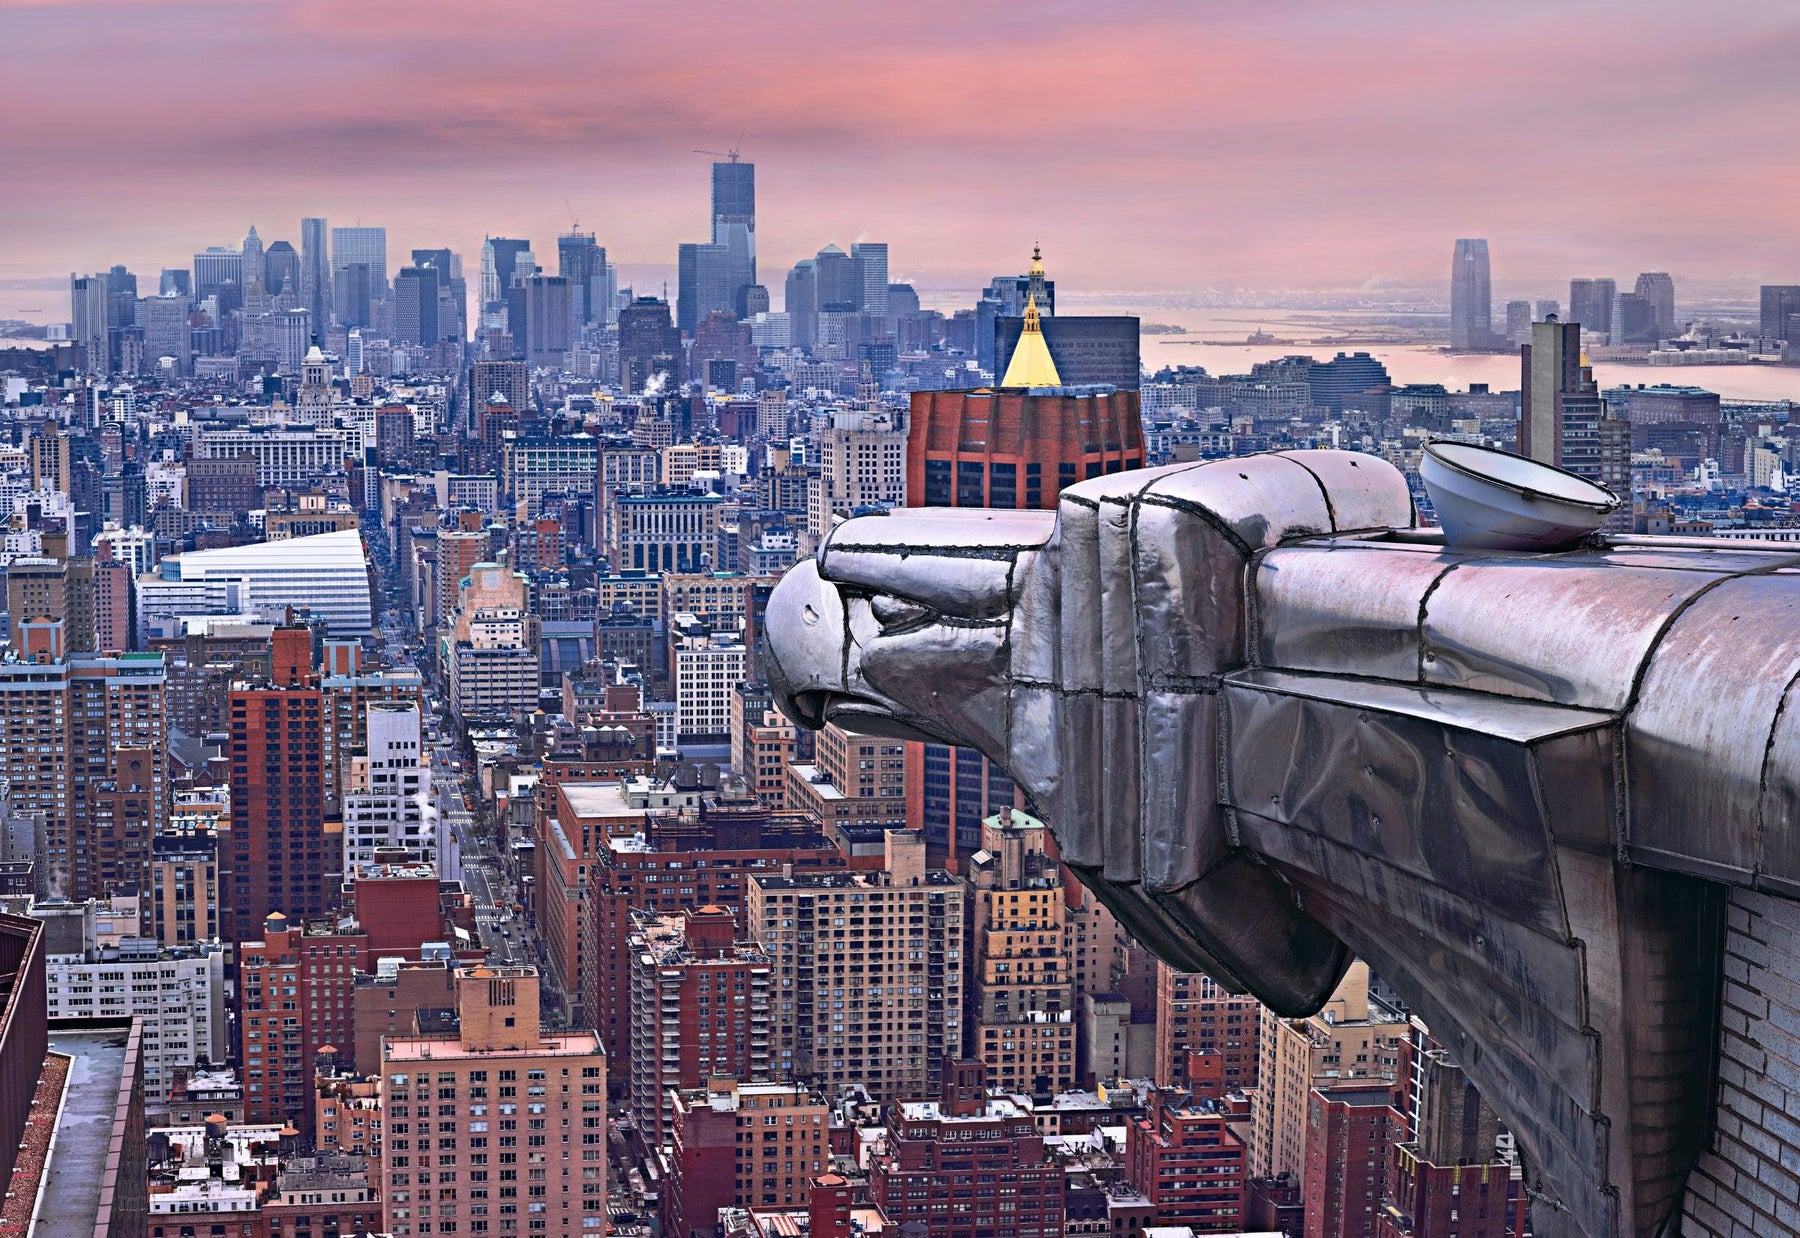 Metal eagle head statue overlooking the city of New York on a cloudy day at sunset